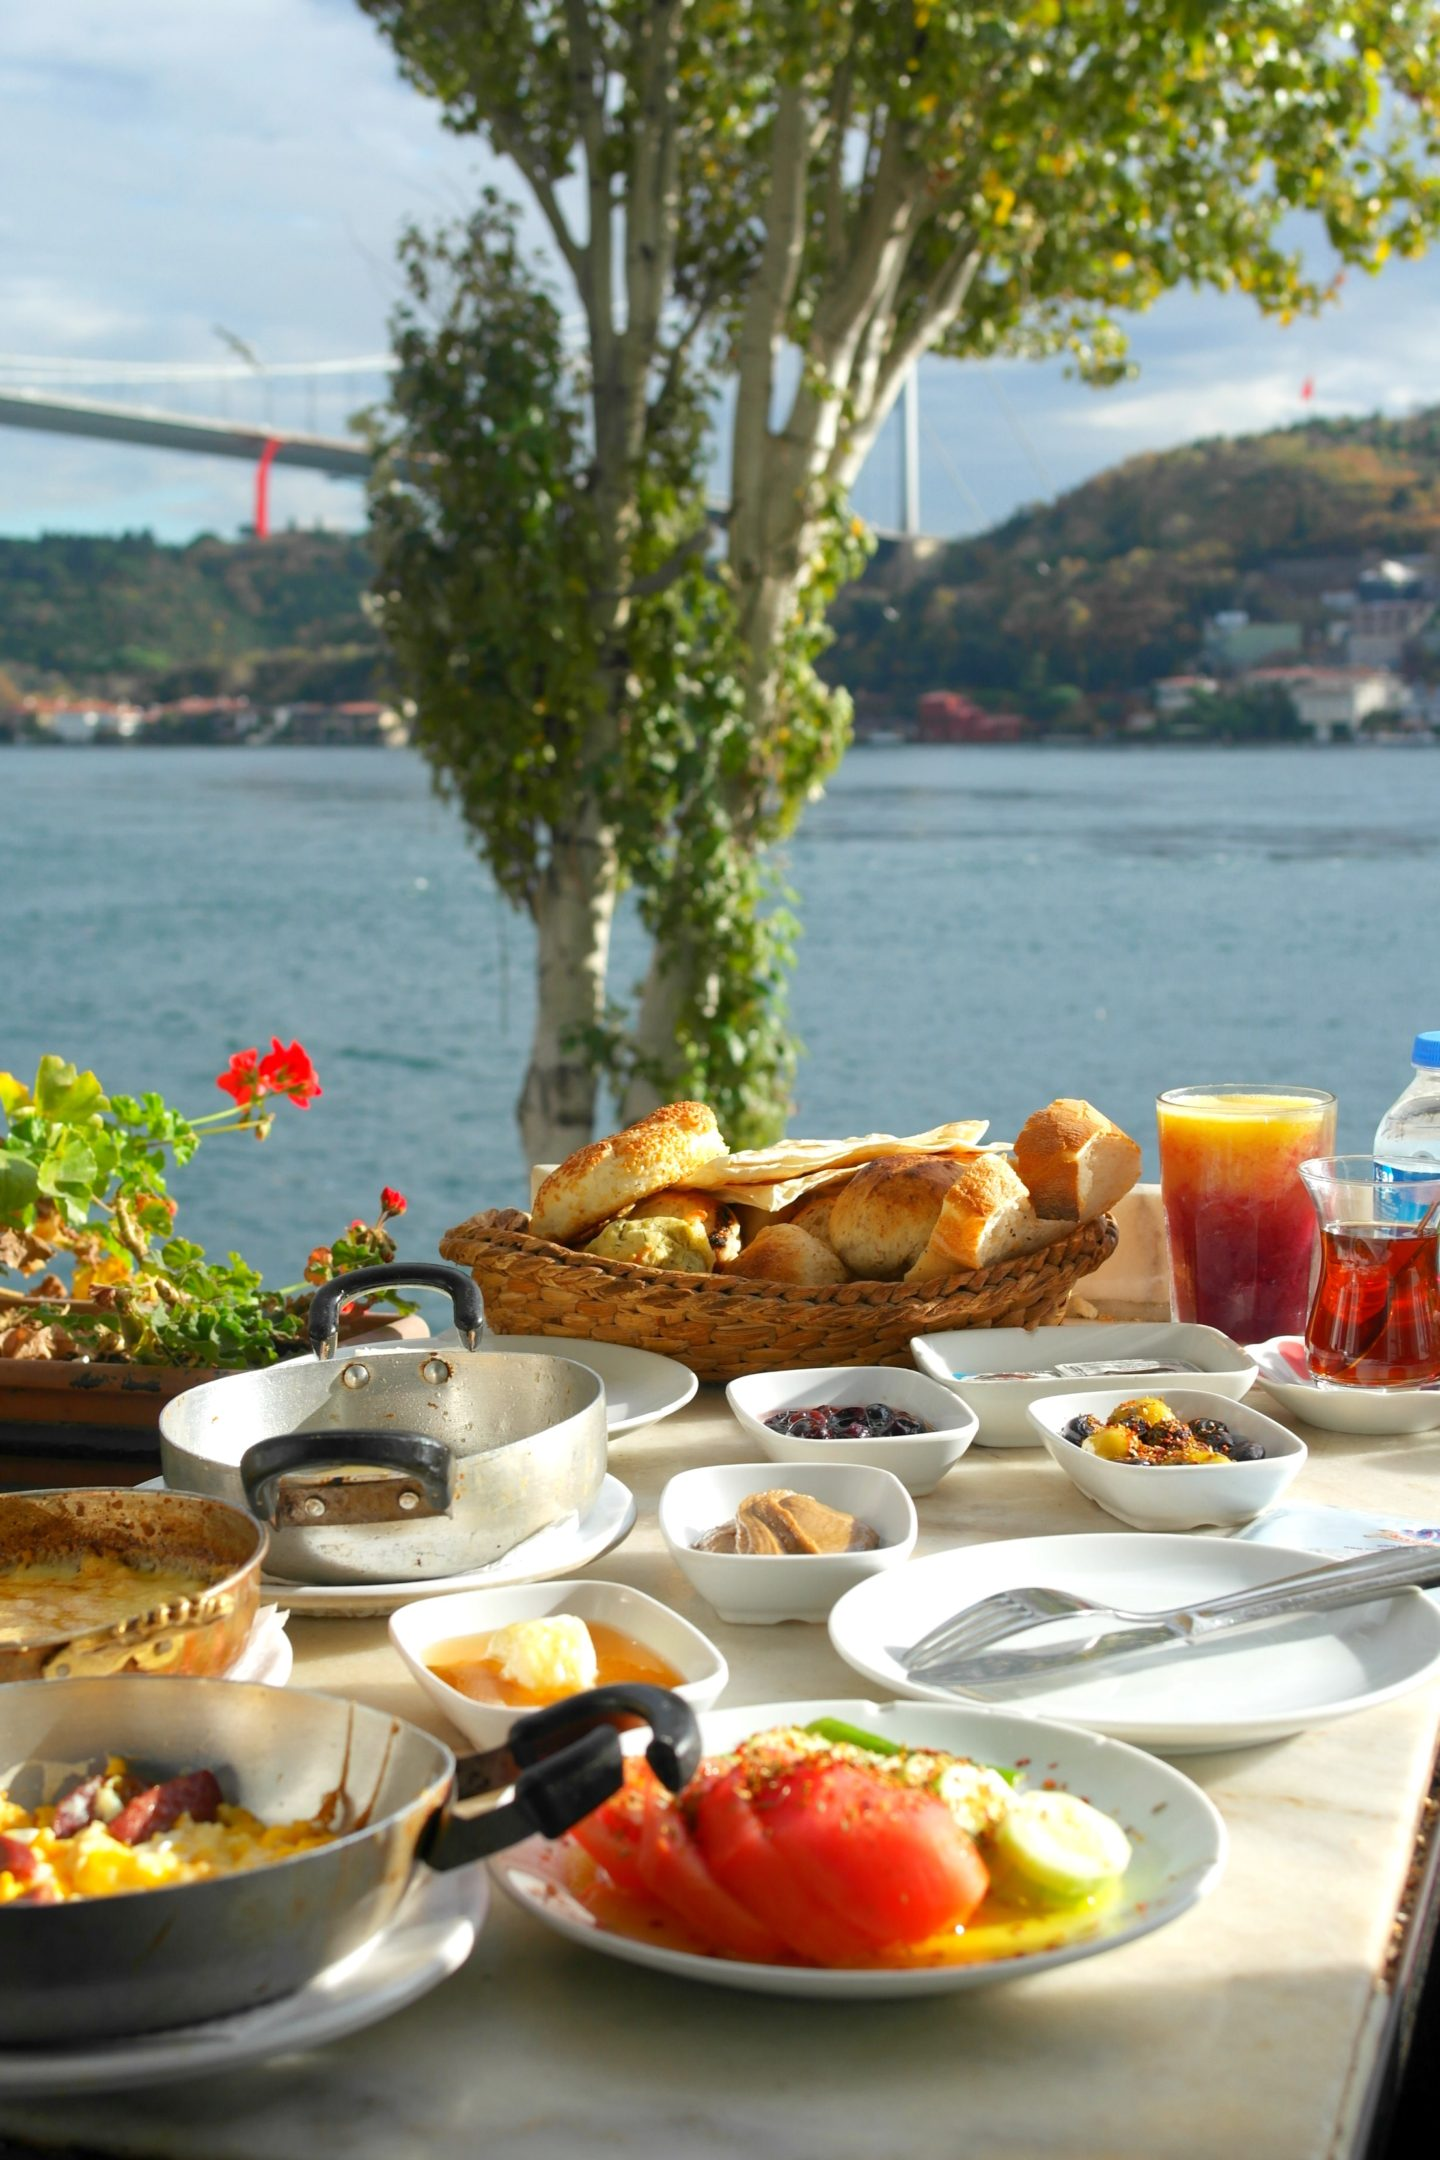 Turkish Breakfast – A feast for the eyes